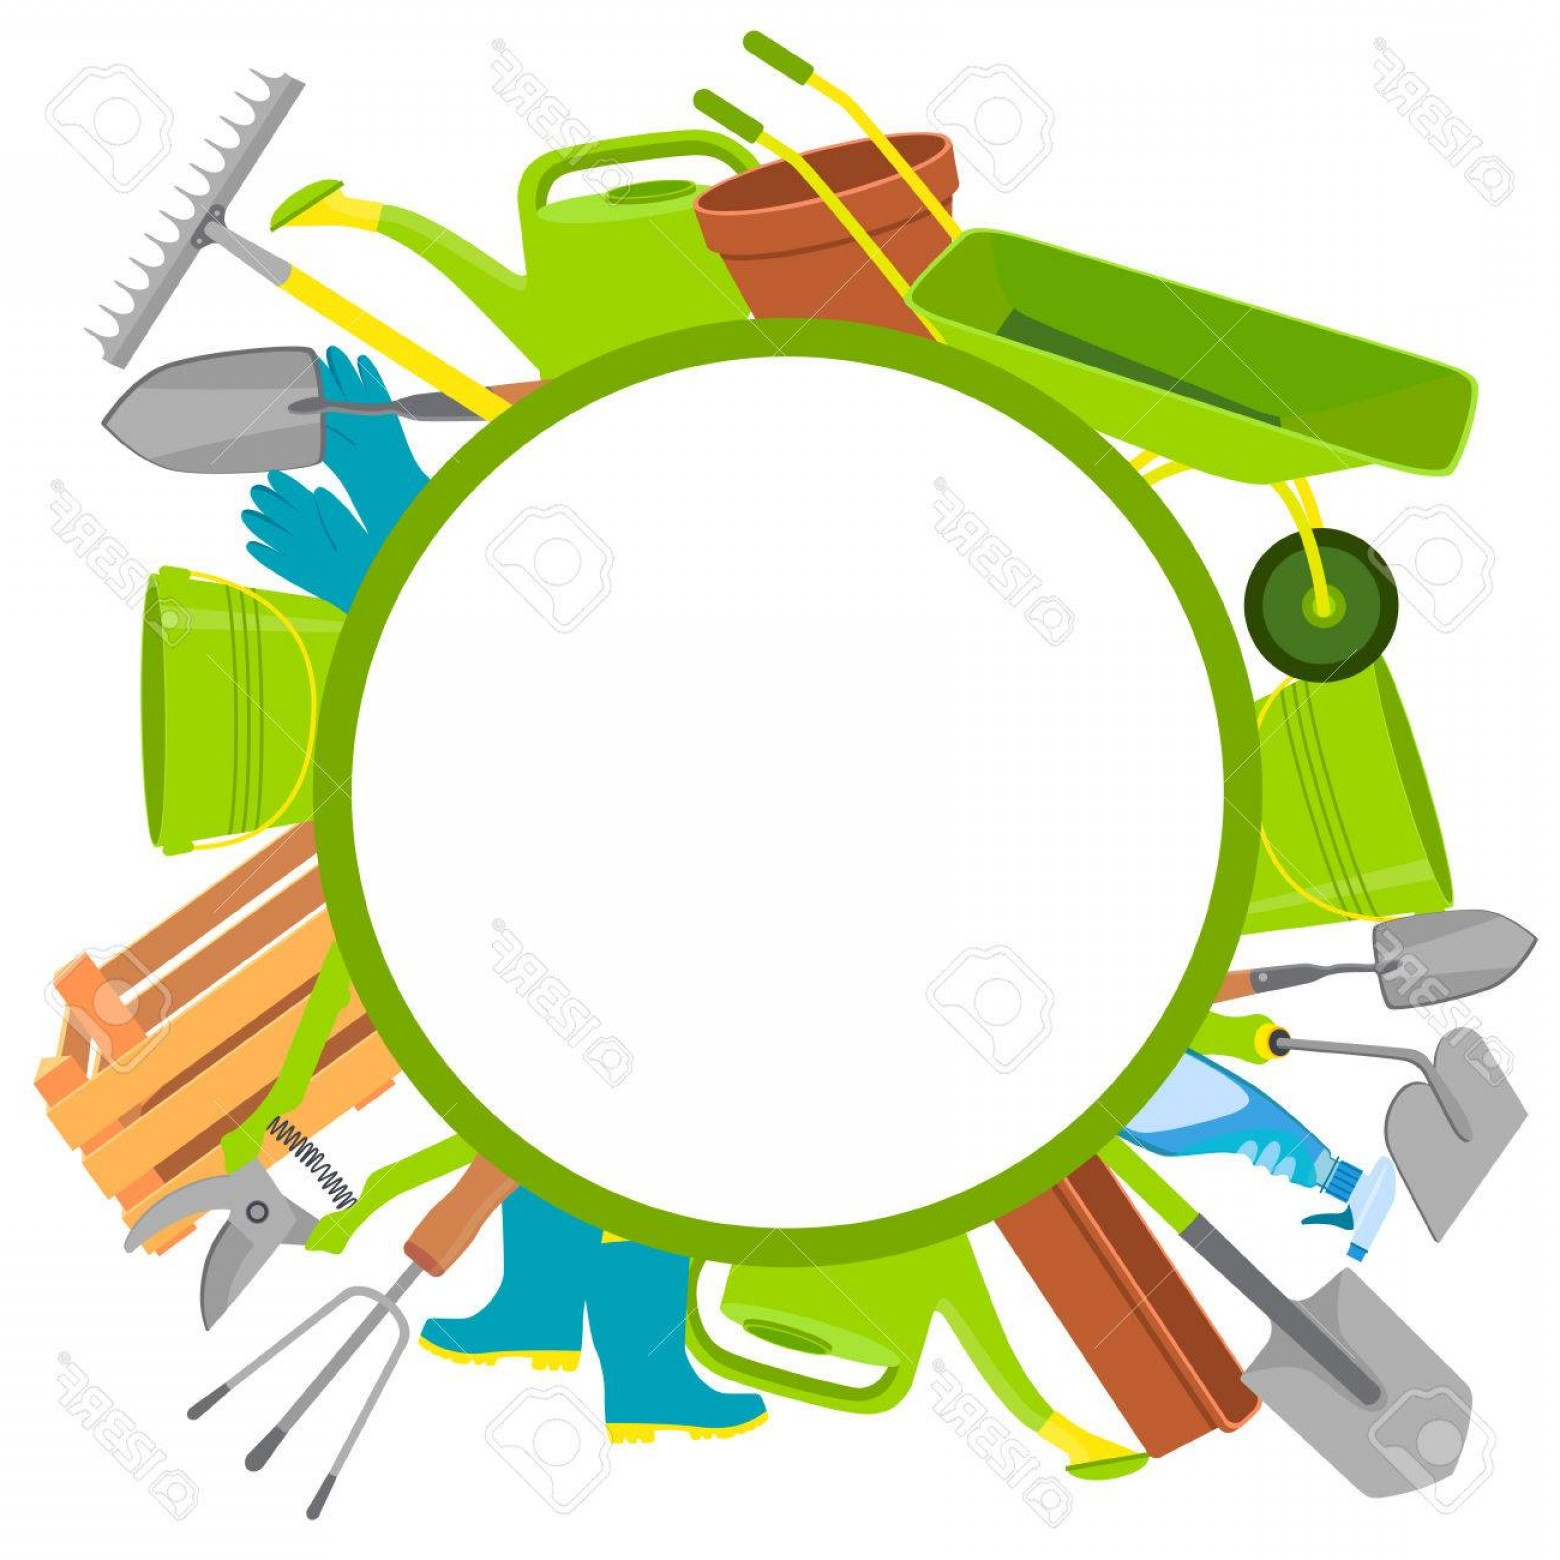 Tools For Text Vector: Fancy Photostock Vector Round Background Garden Tools With Space For Text Vector Illustration